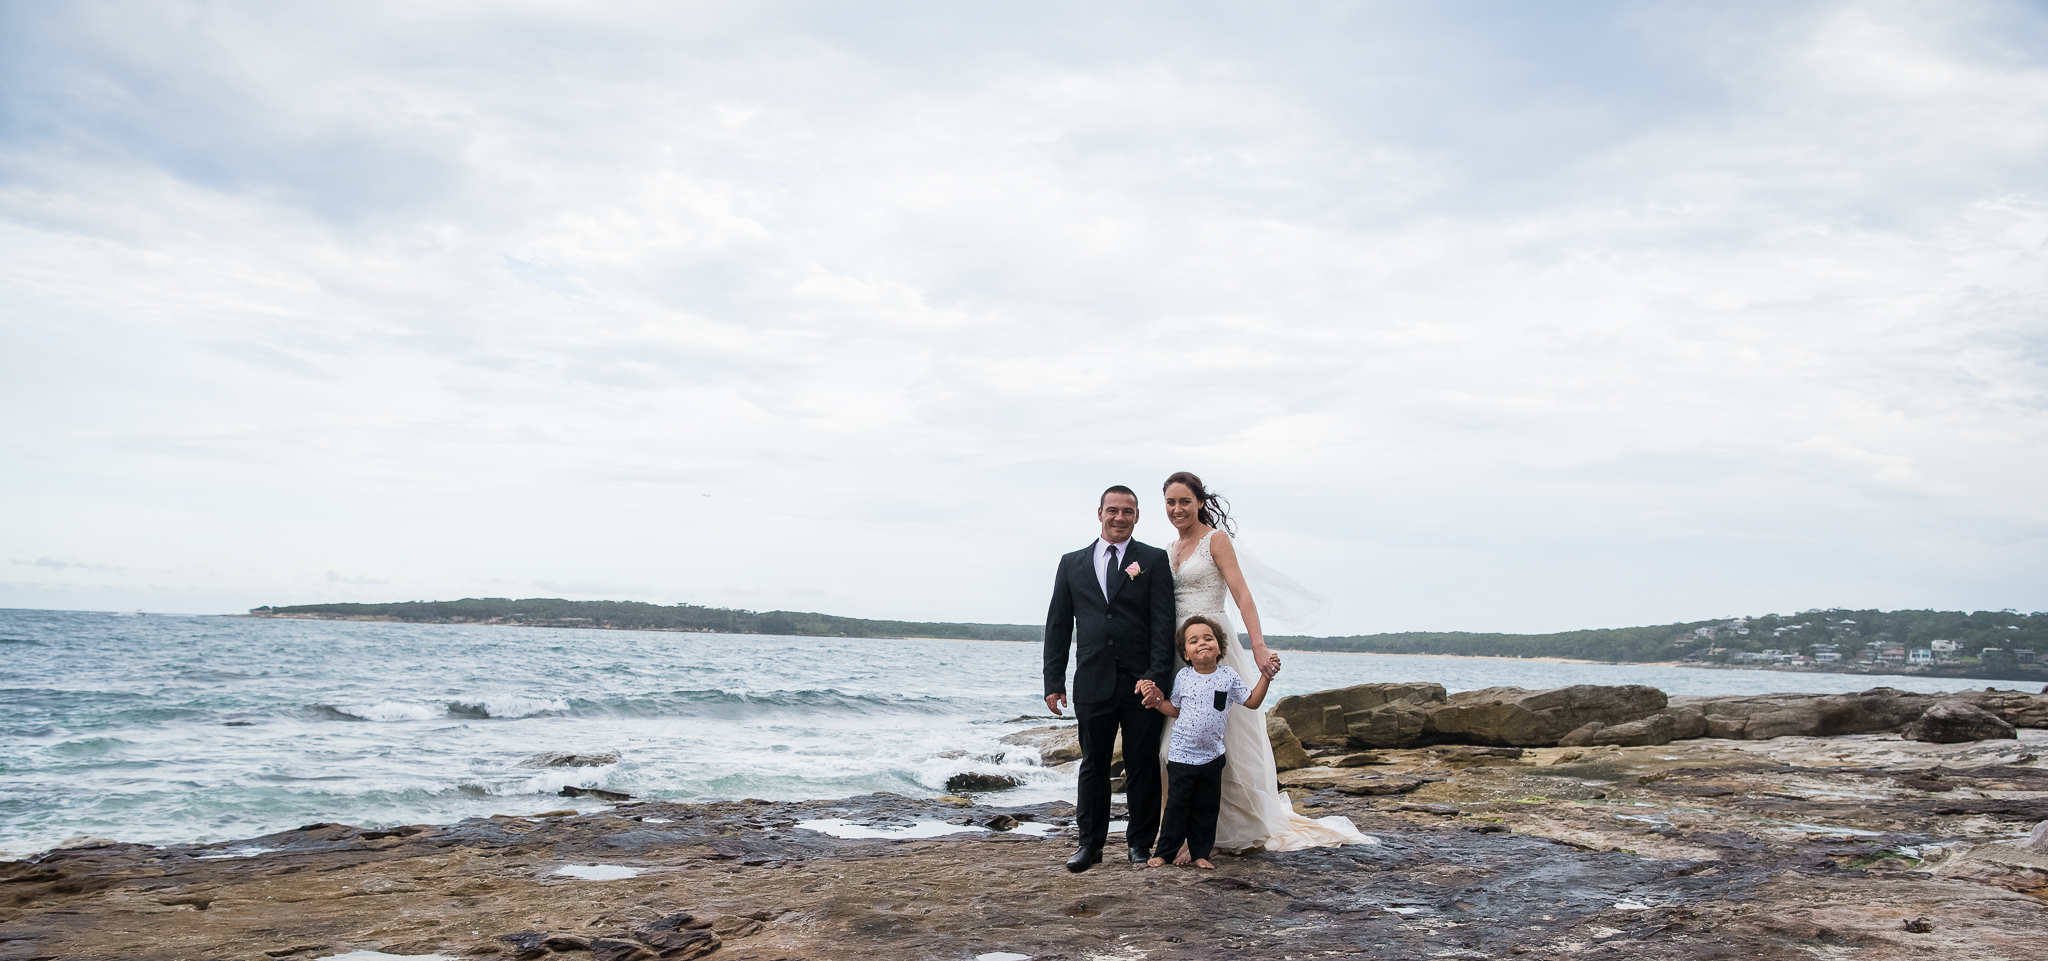 panoramic image of bridal party at the beach sydney